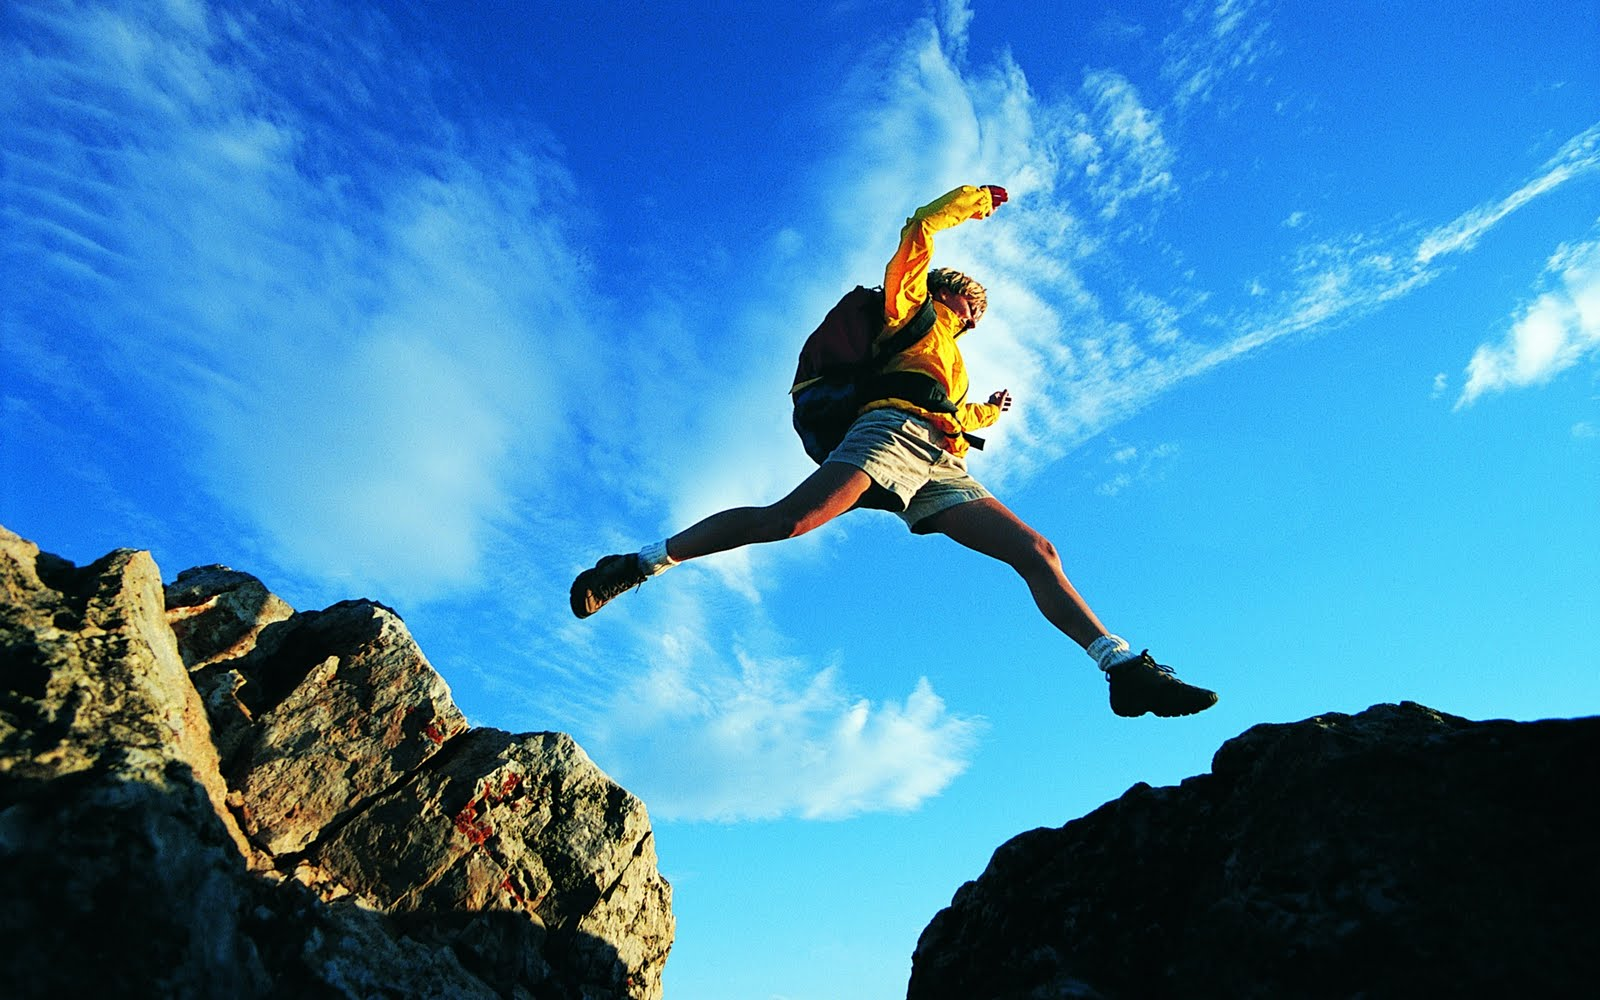 ONLY 4 WALLPAPER: AMAZING EXTREME SPORTS WALLPAPER [PART 4]